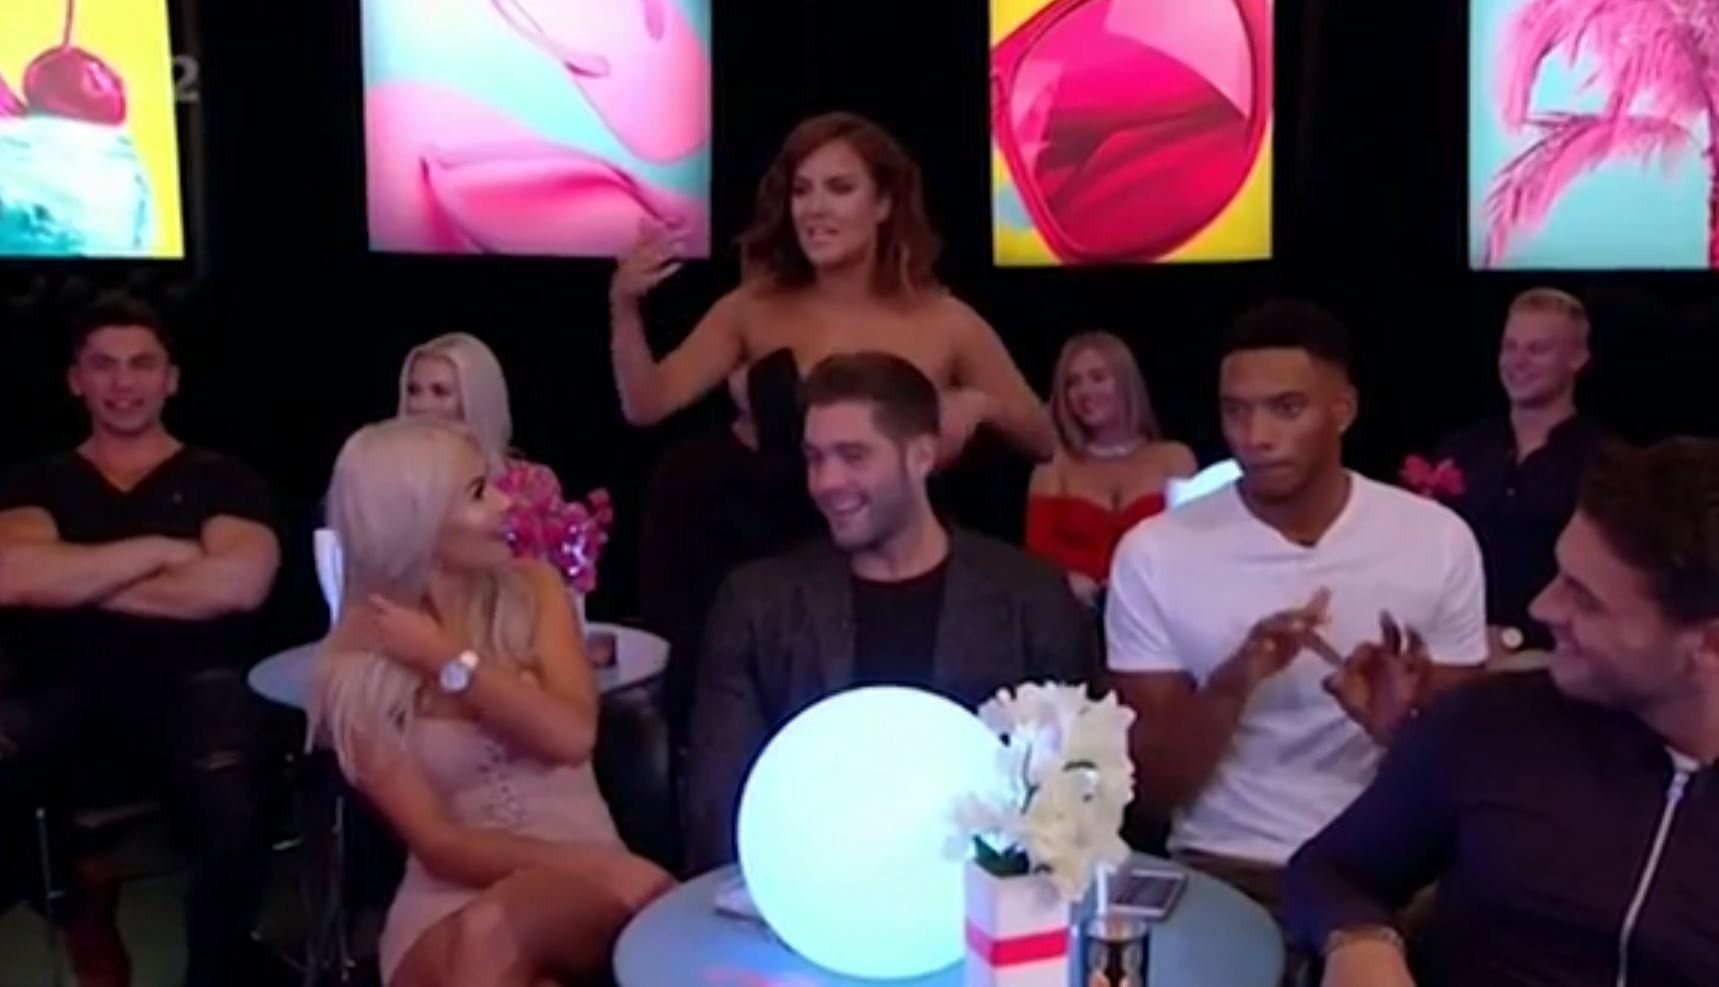 Love Island's Jonny Mitchell Mugged Off His New Girlfriend On The Live Reunion And Got A Deserved